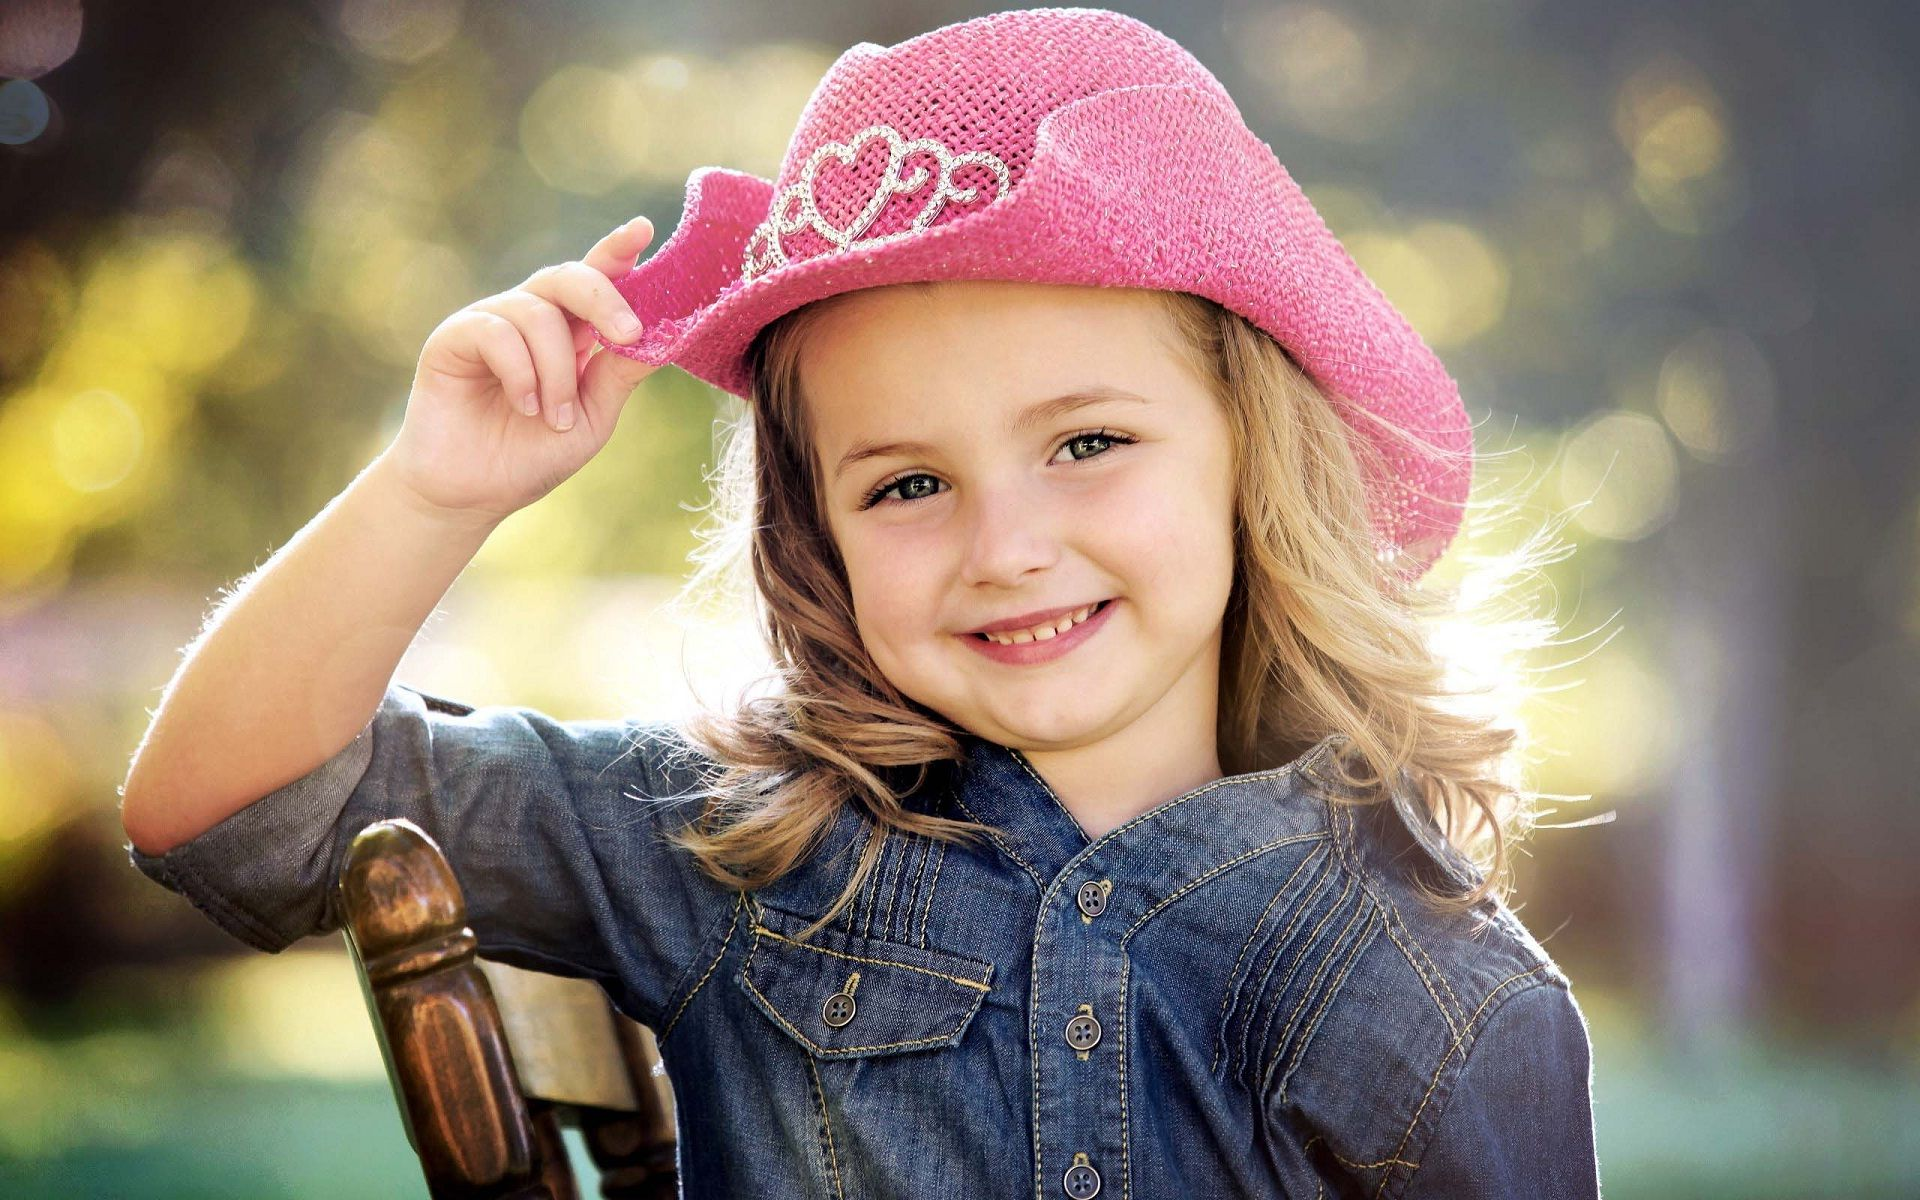 image for stylish cute baby girl beautiful smiling face | grl0428